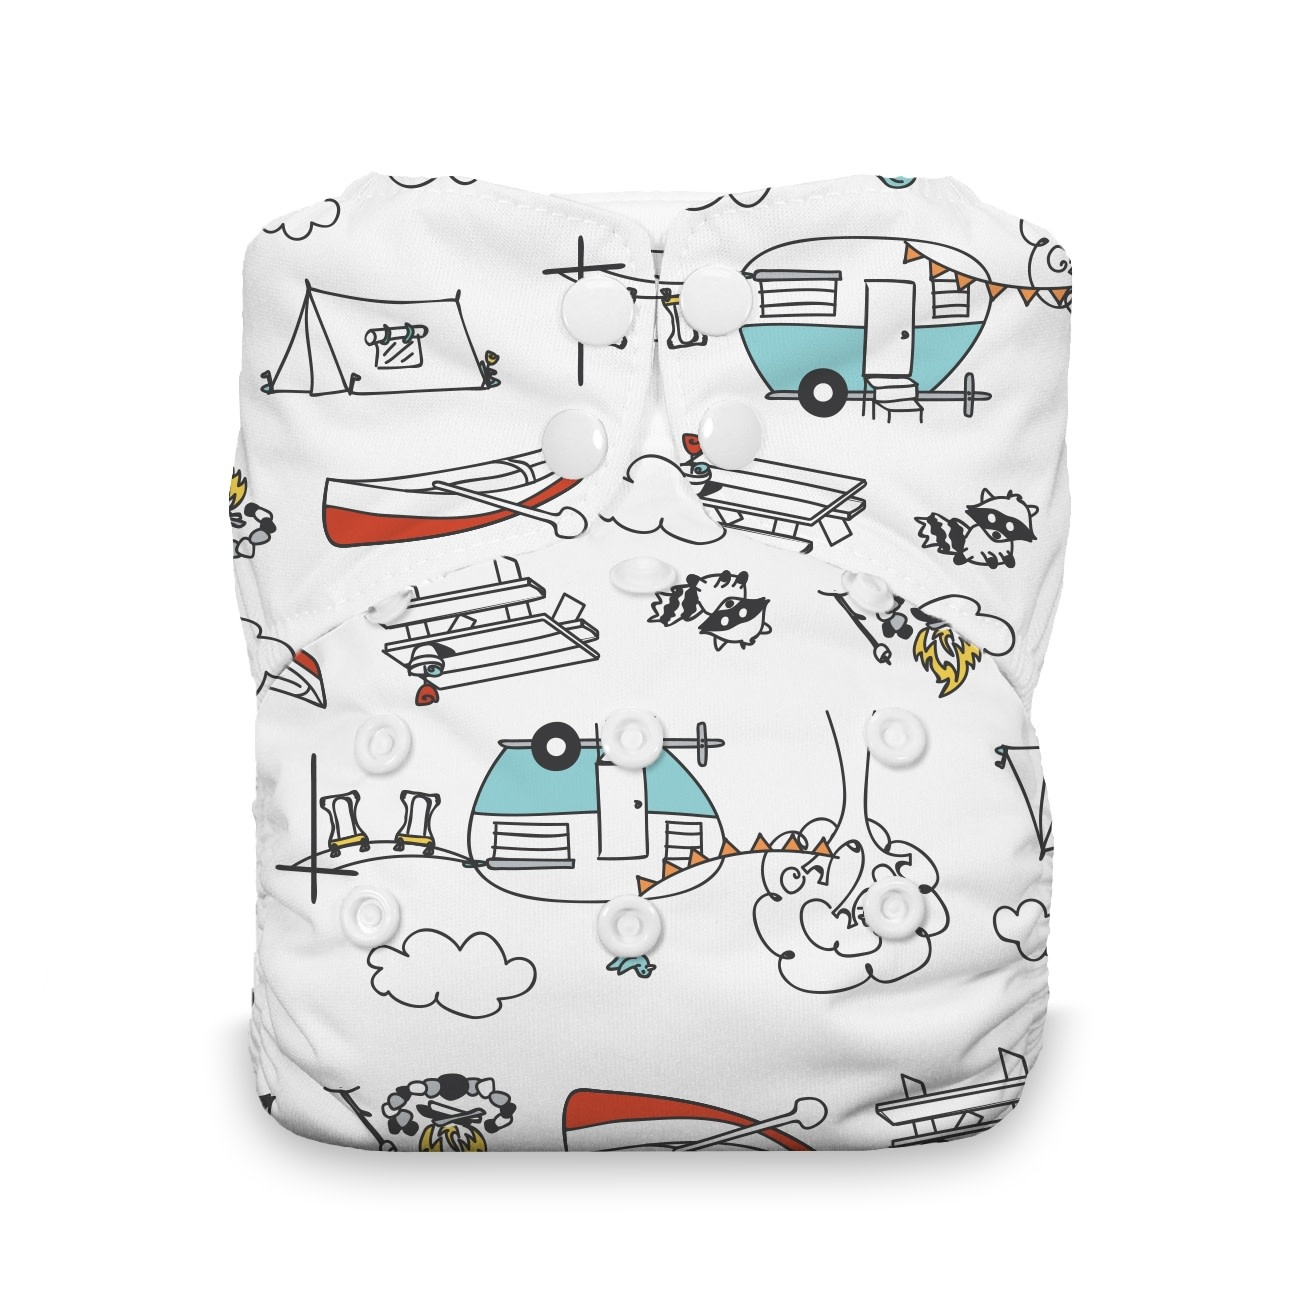 Thirsties Thirsties One Size AIO Snap Happy Camper